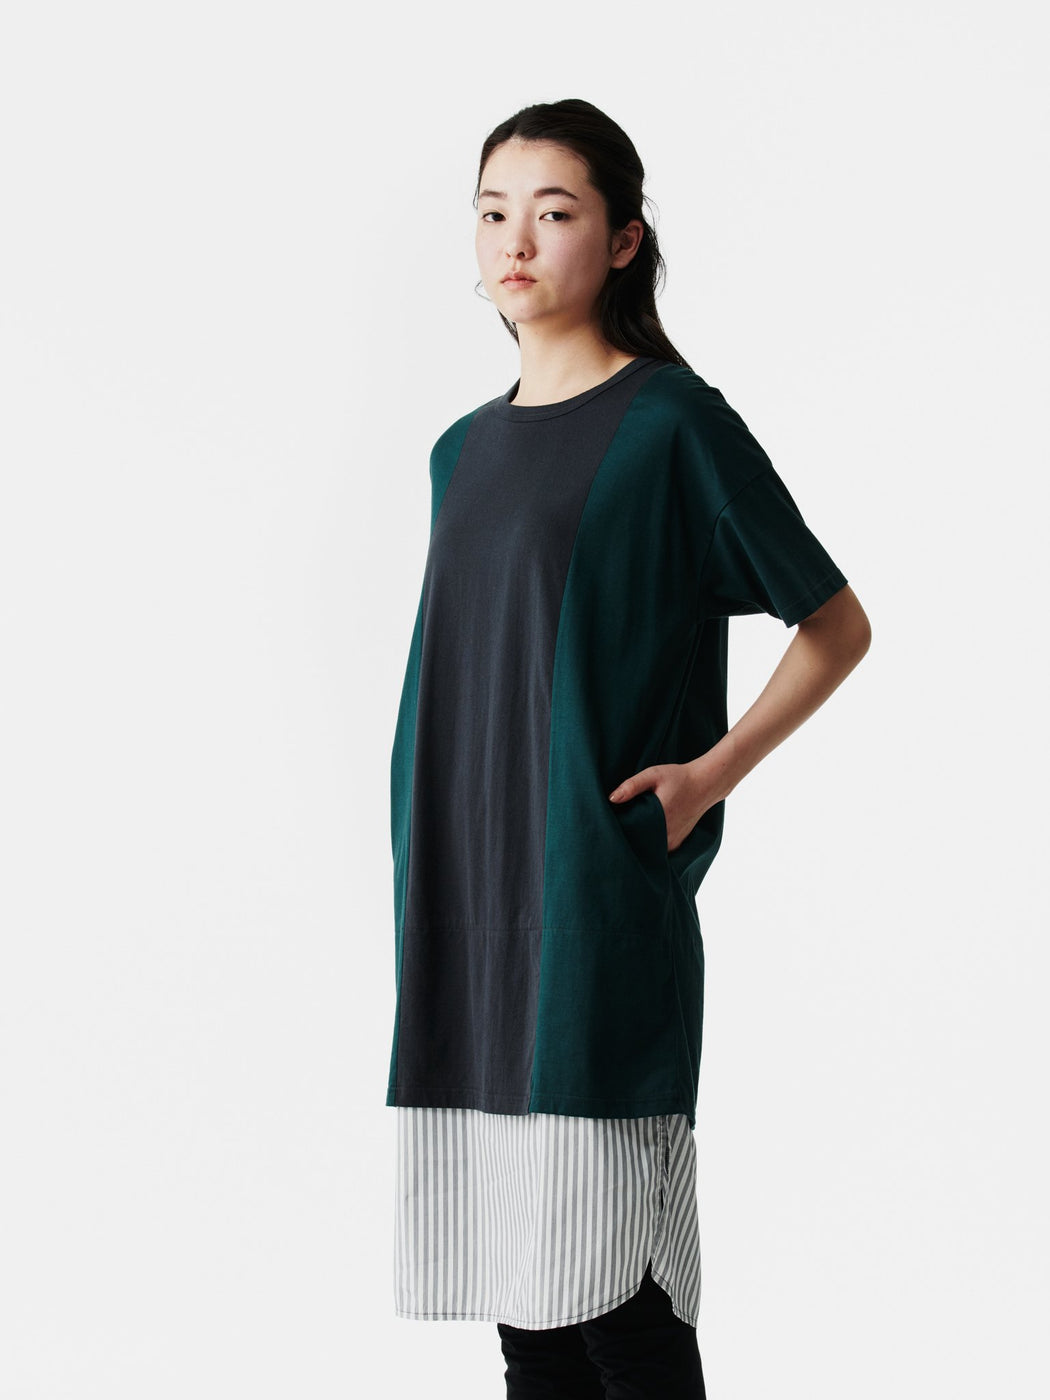 ALOYE Shirt Fabrics Women's Short Sleeve T-shirt Dress Dark Green-Fine Stripe